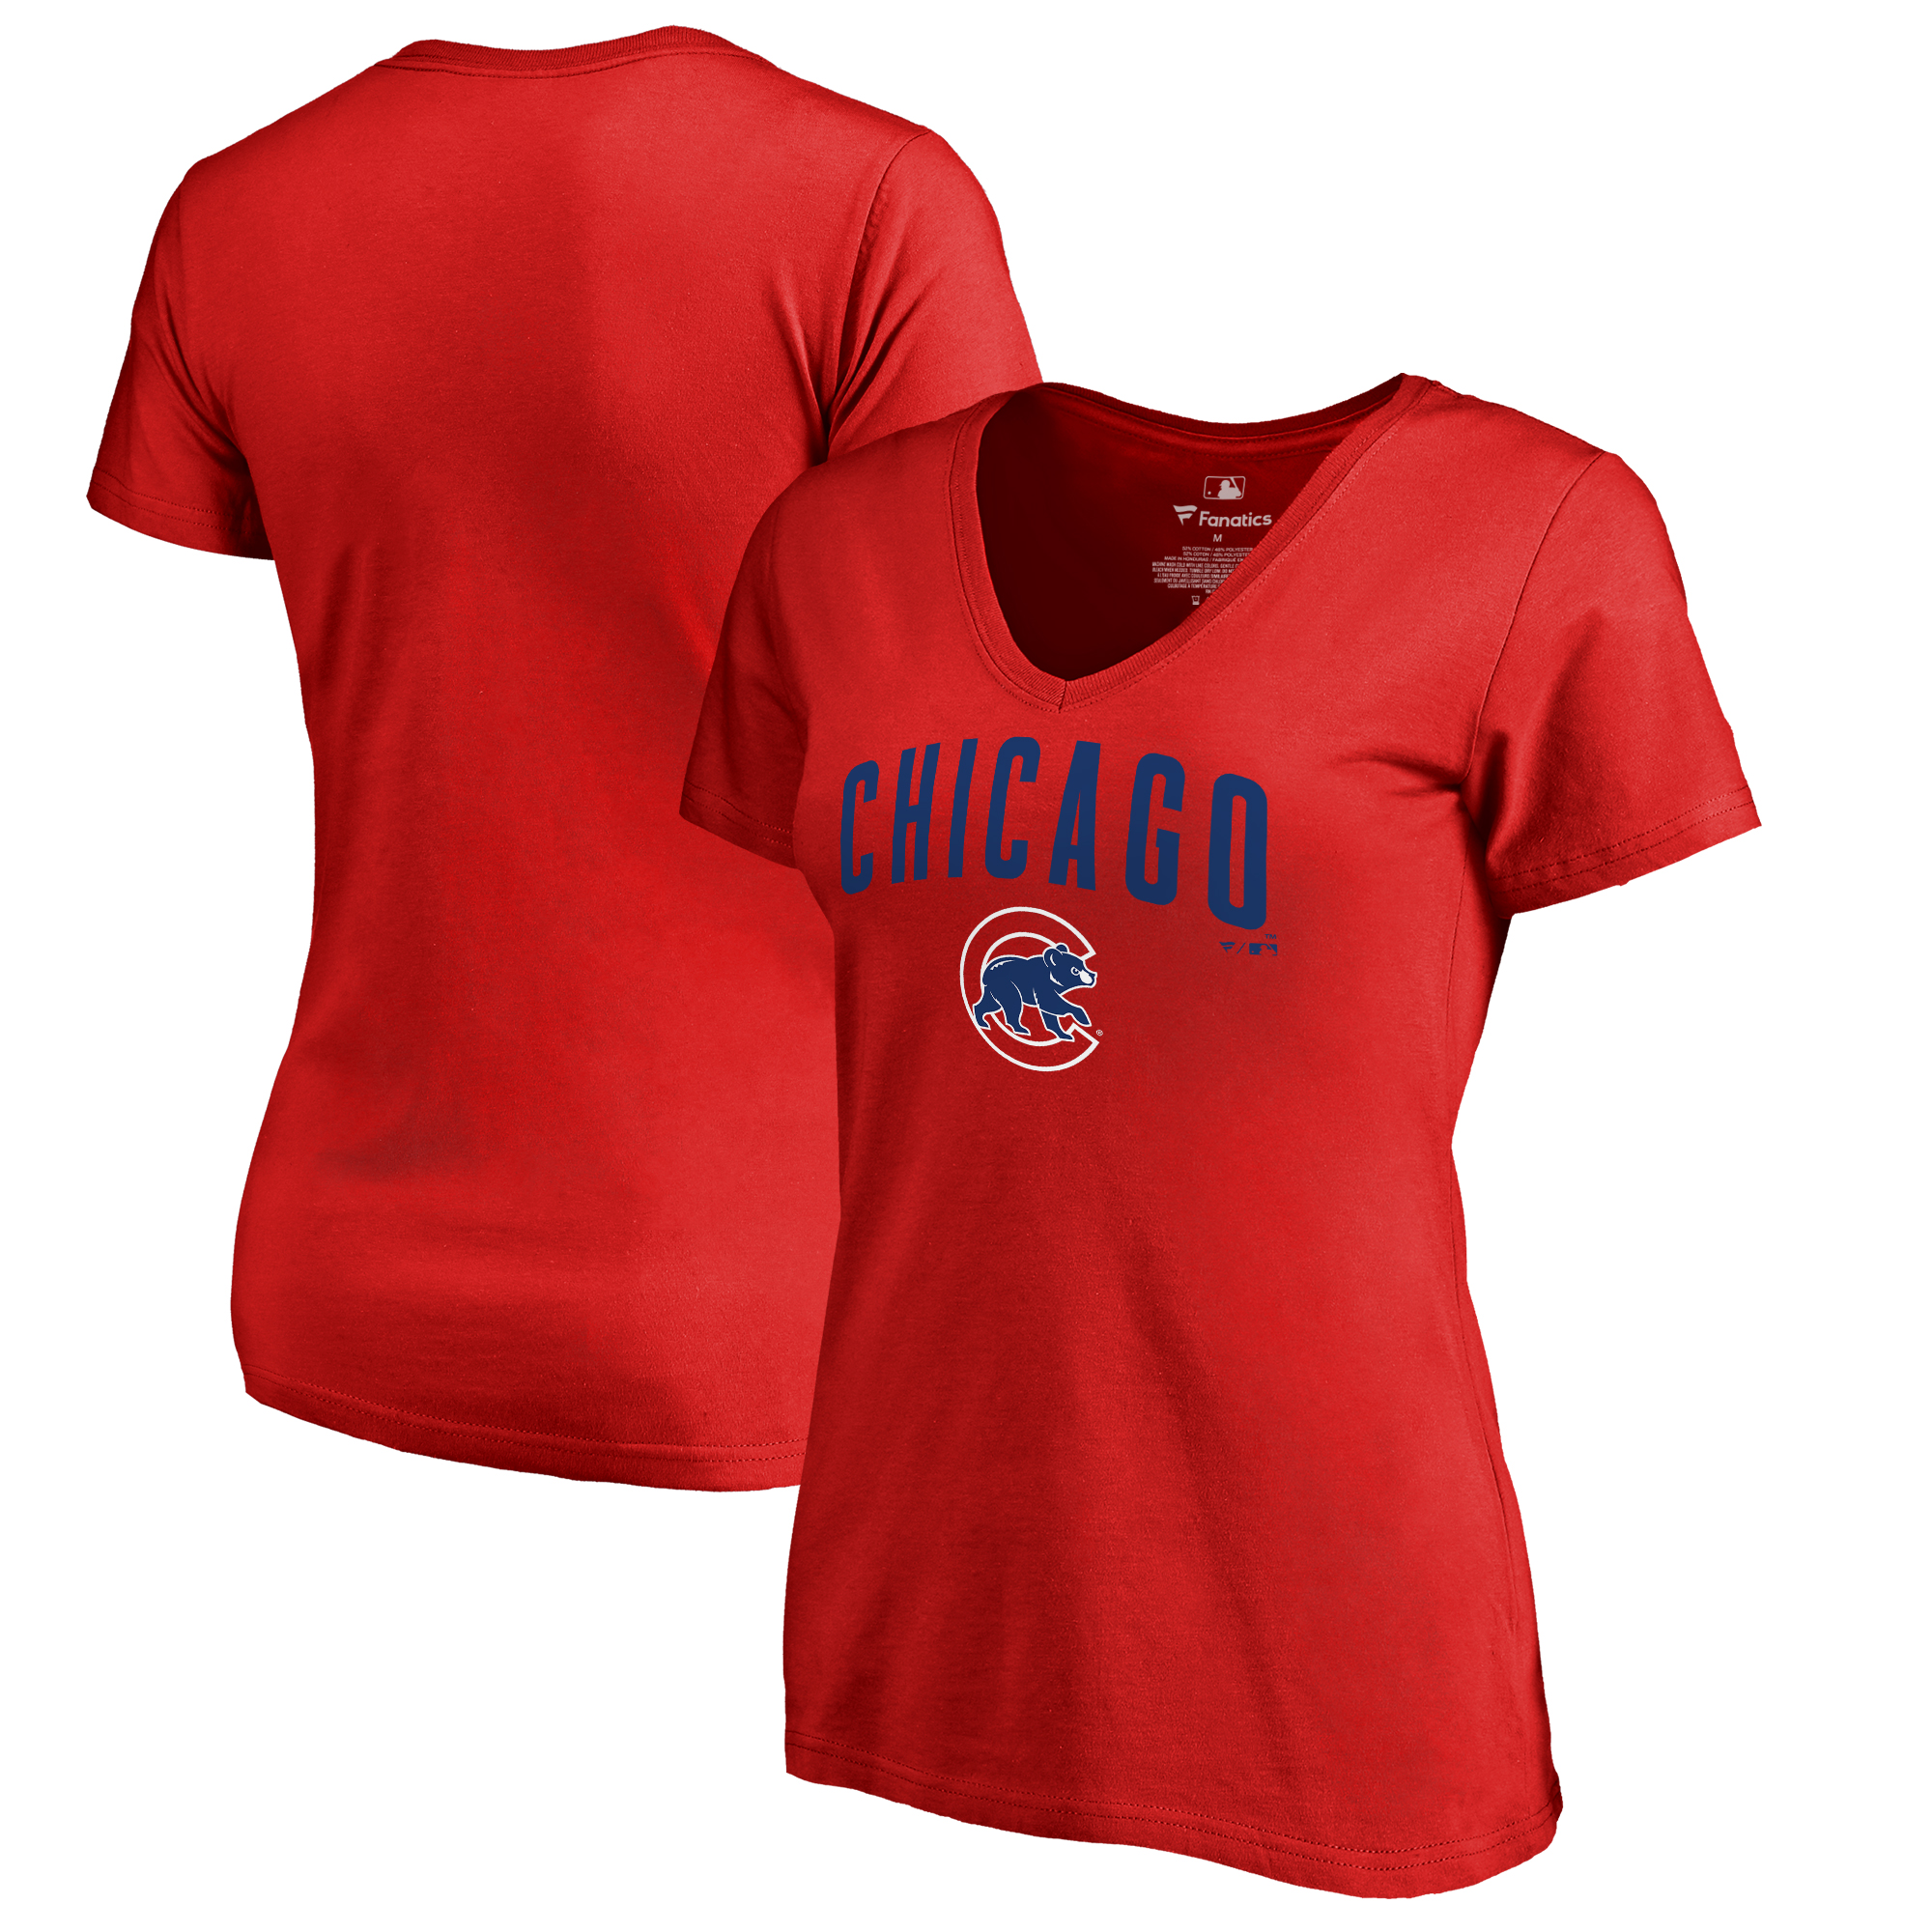 Chicago Cubs Fanatics Branded Women's Plus Sizes Team Lockup T-Shirt - Red